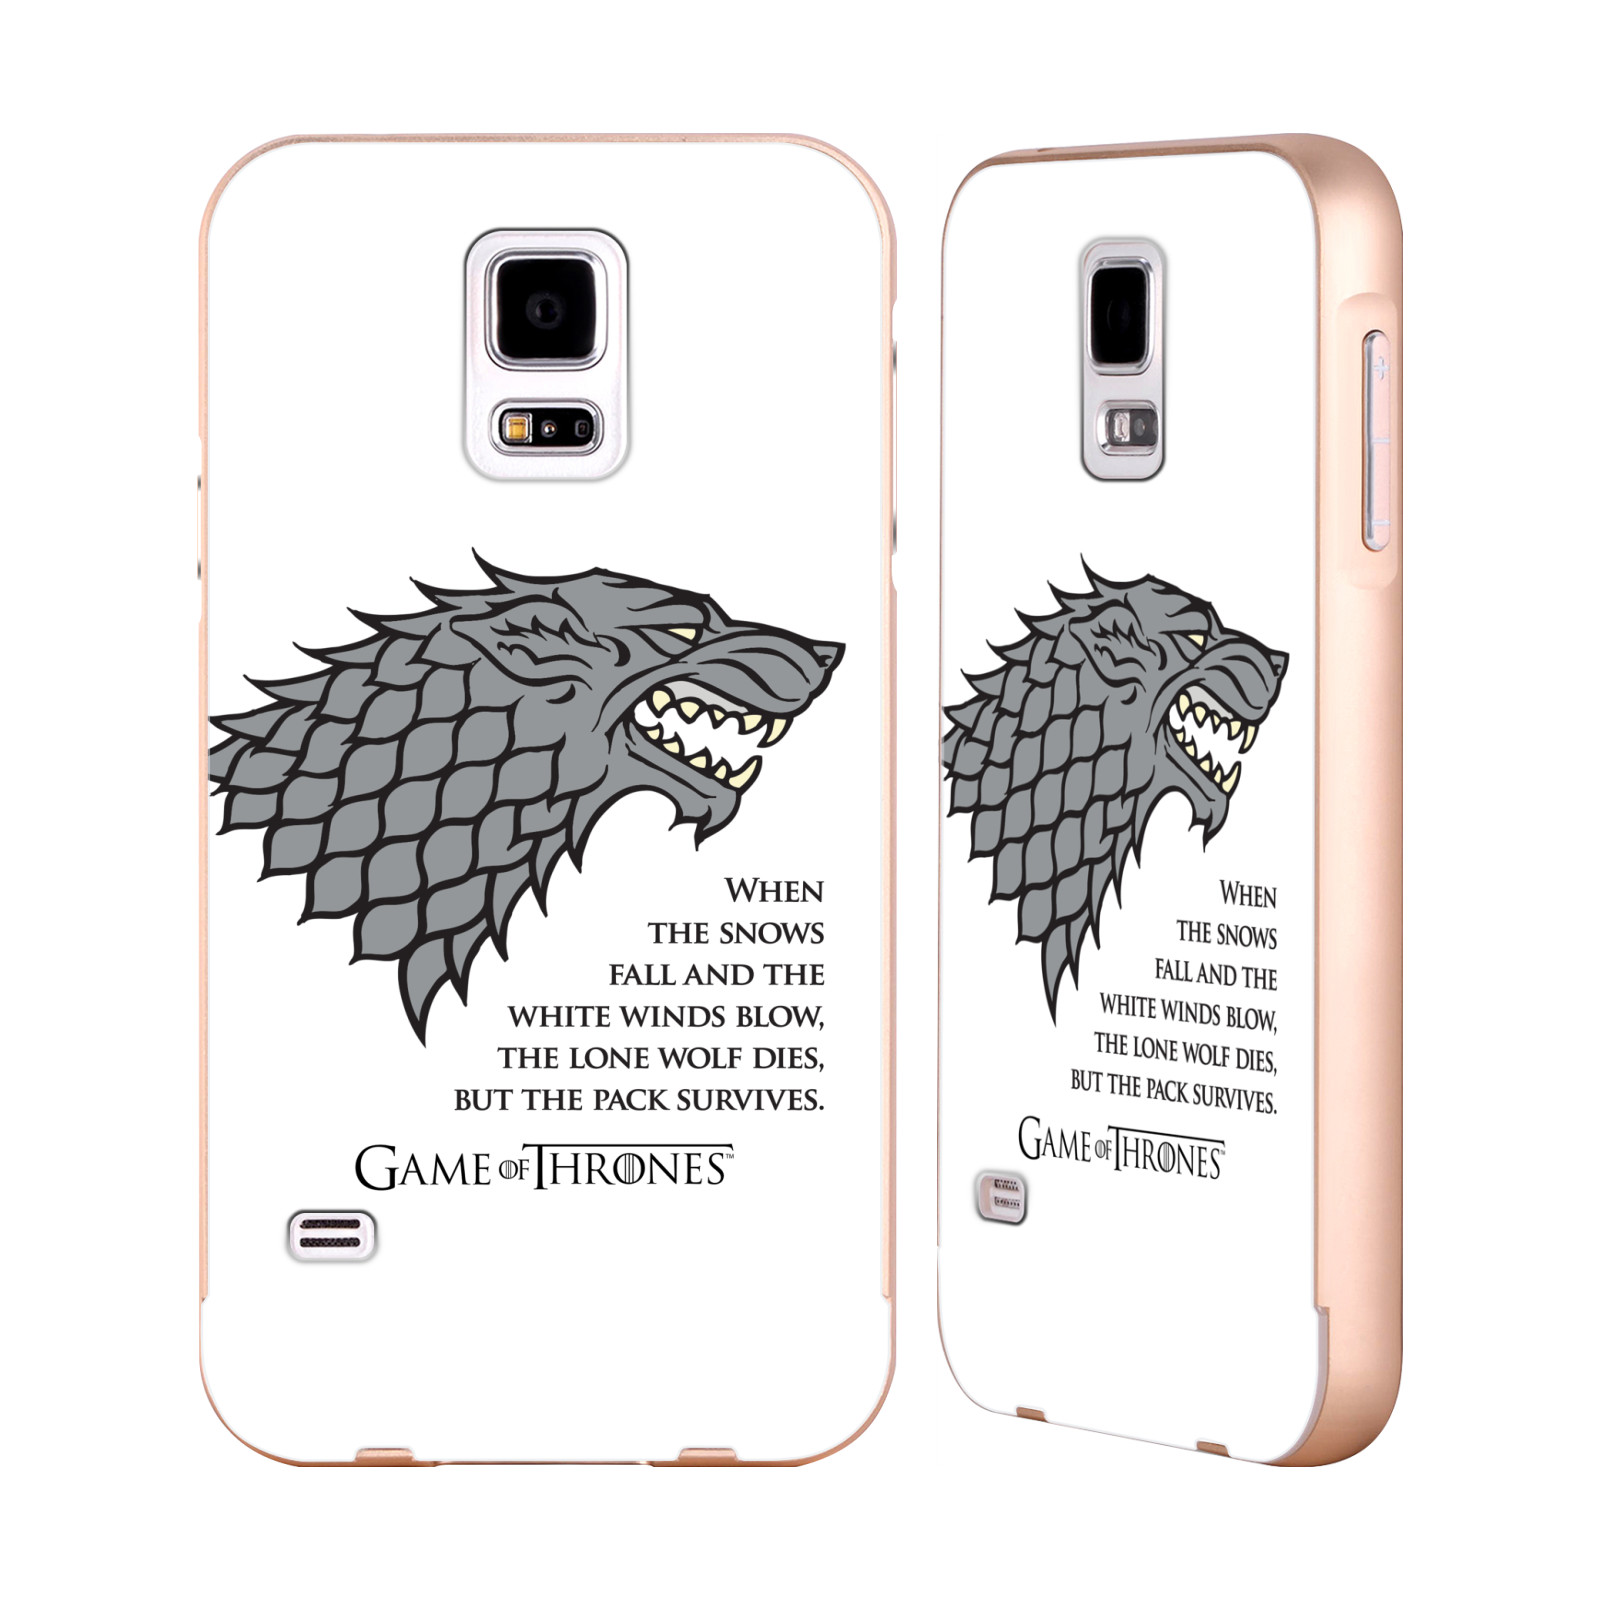 HBO-GAME-OF-THRONES-GRAPHISME-OR-ETUI-COQUE-SLIDER-POUR-SAMSUNG-TELEPHONES